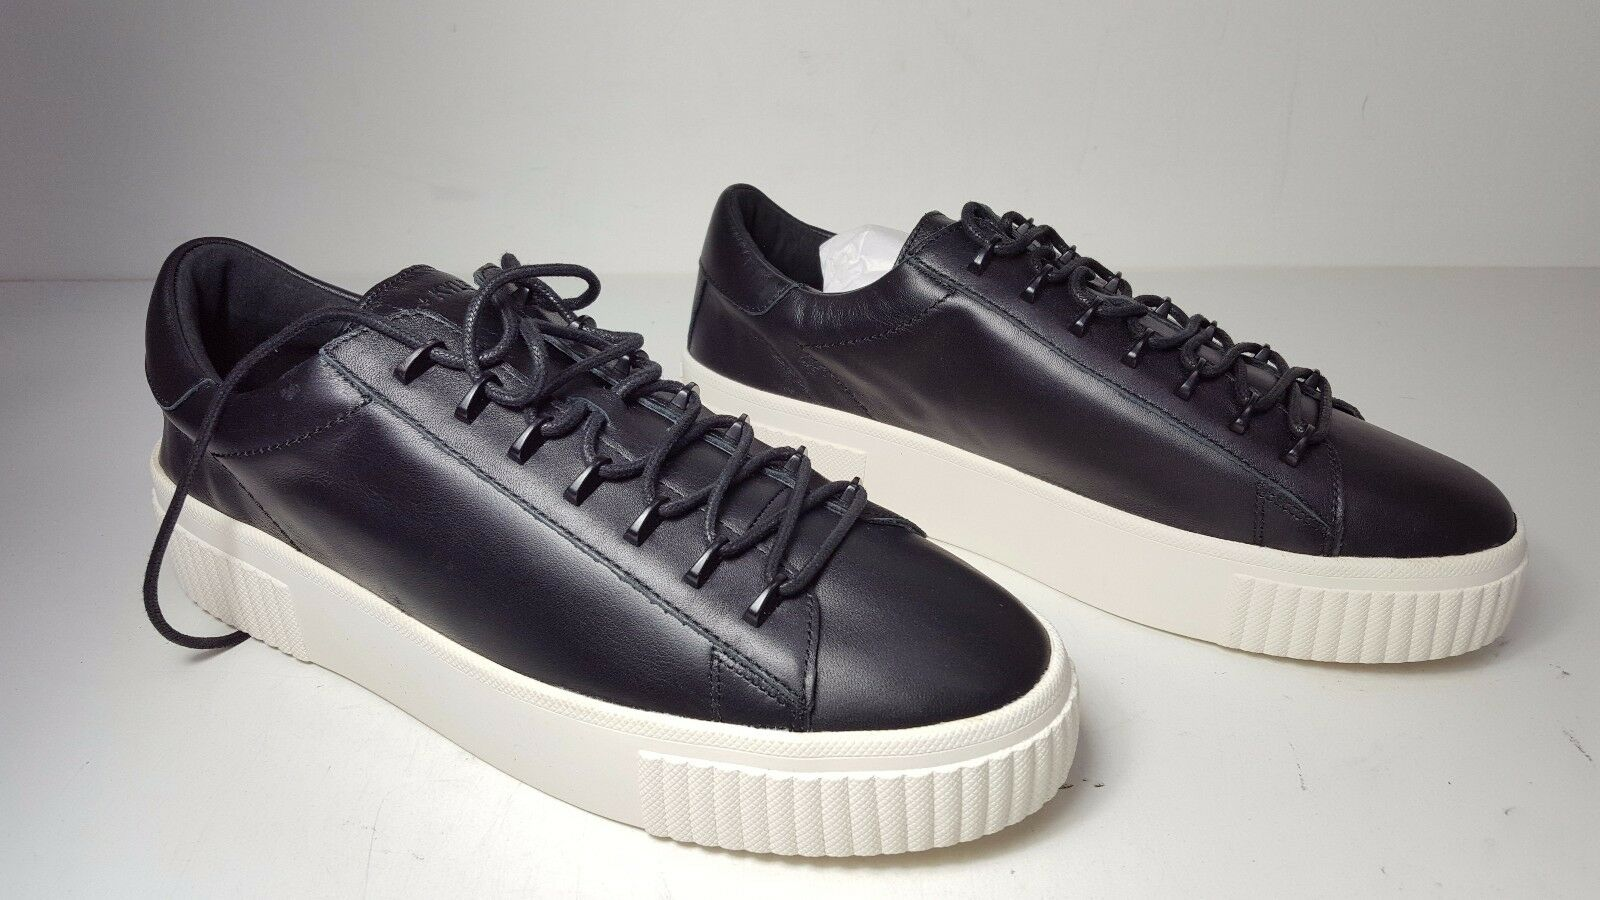 130 Taille 10 KENDALL and KYLIE Reese   noir  Reese Leather Sneakers femmes Chaussures  NEW eace28